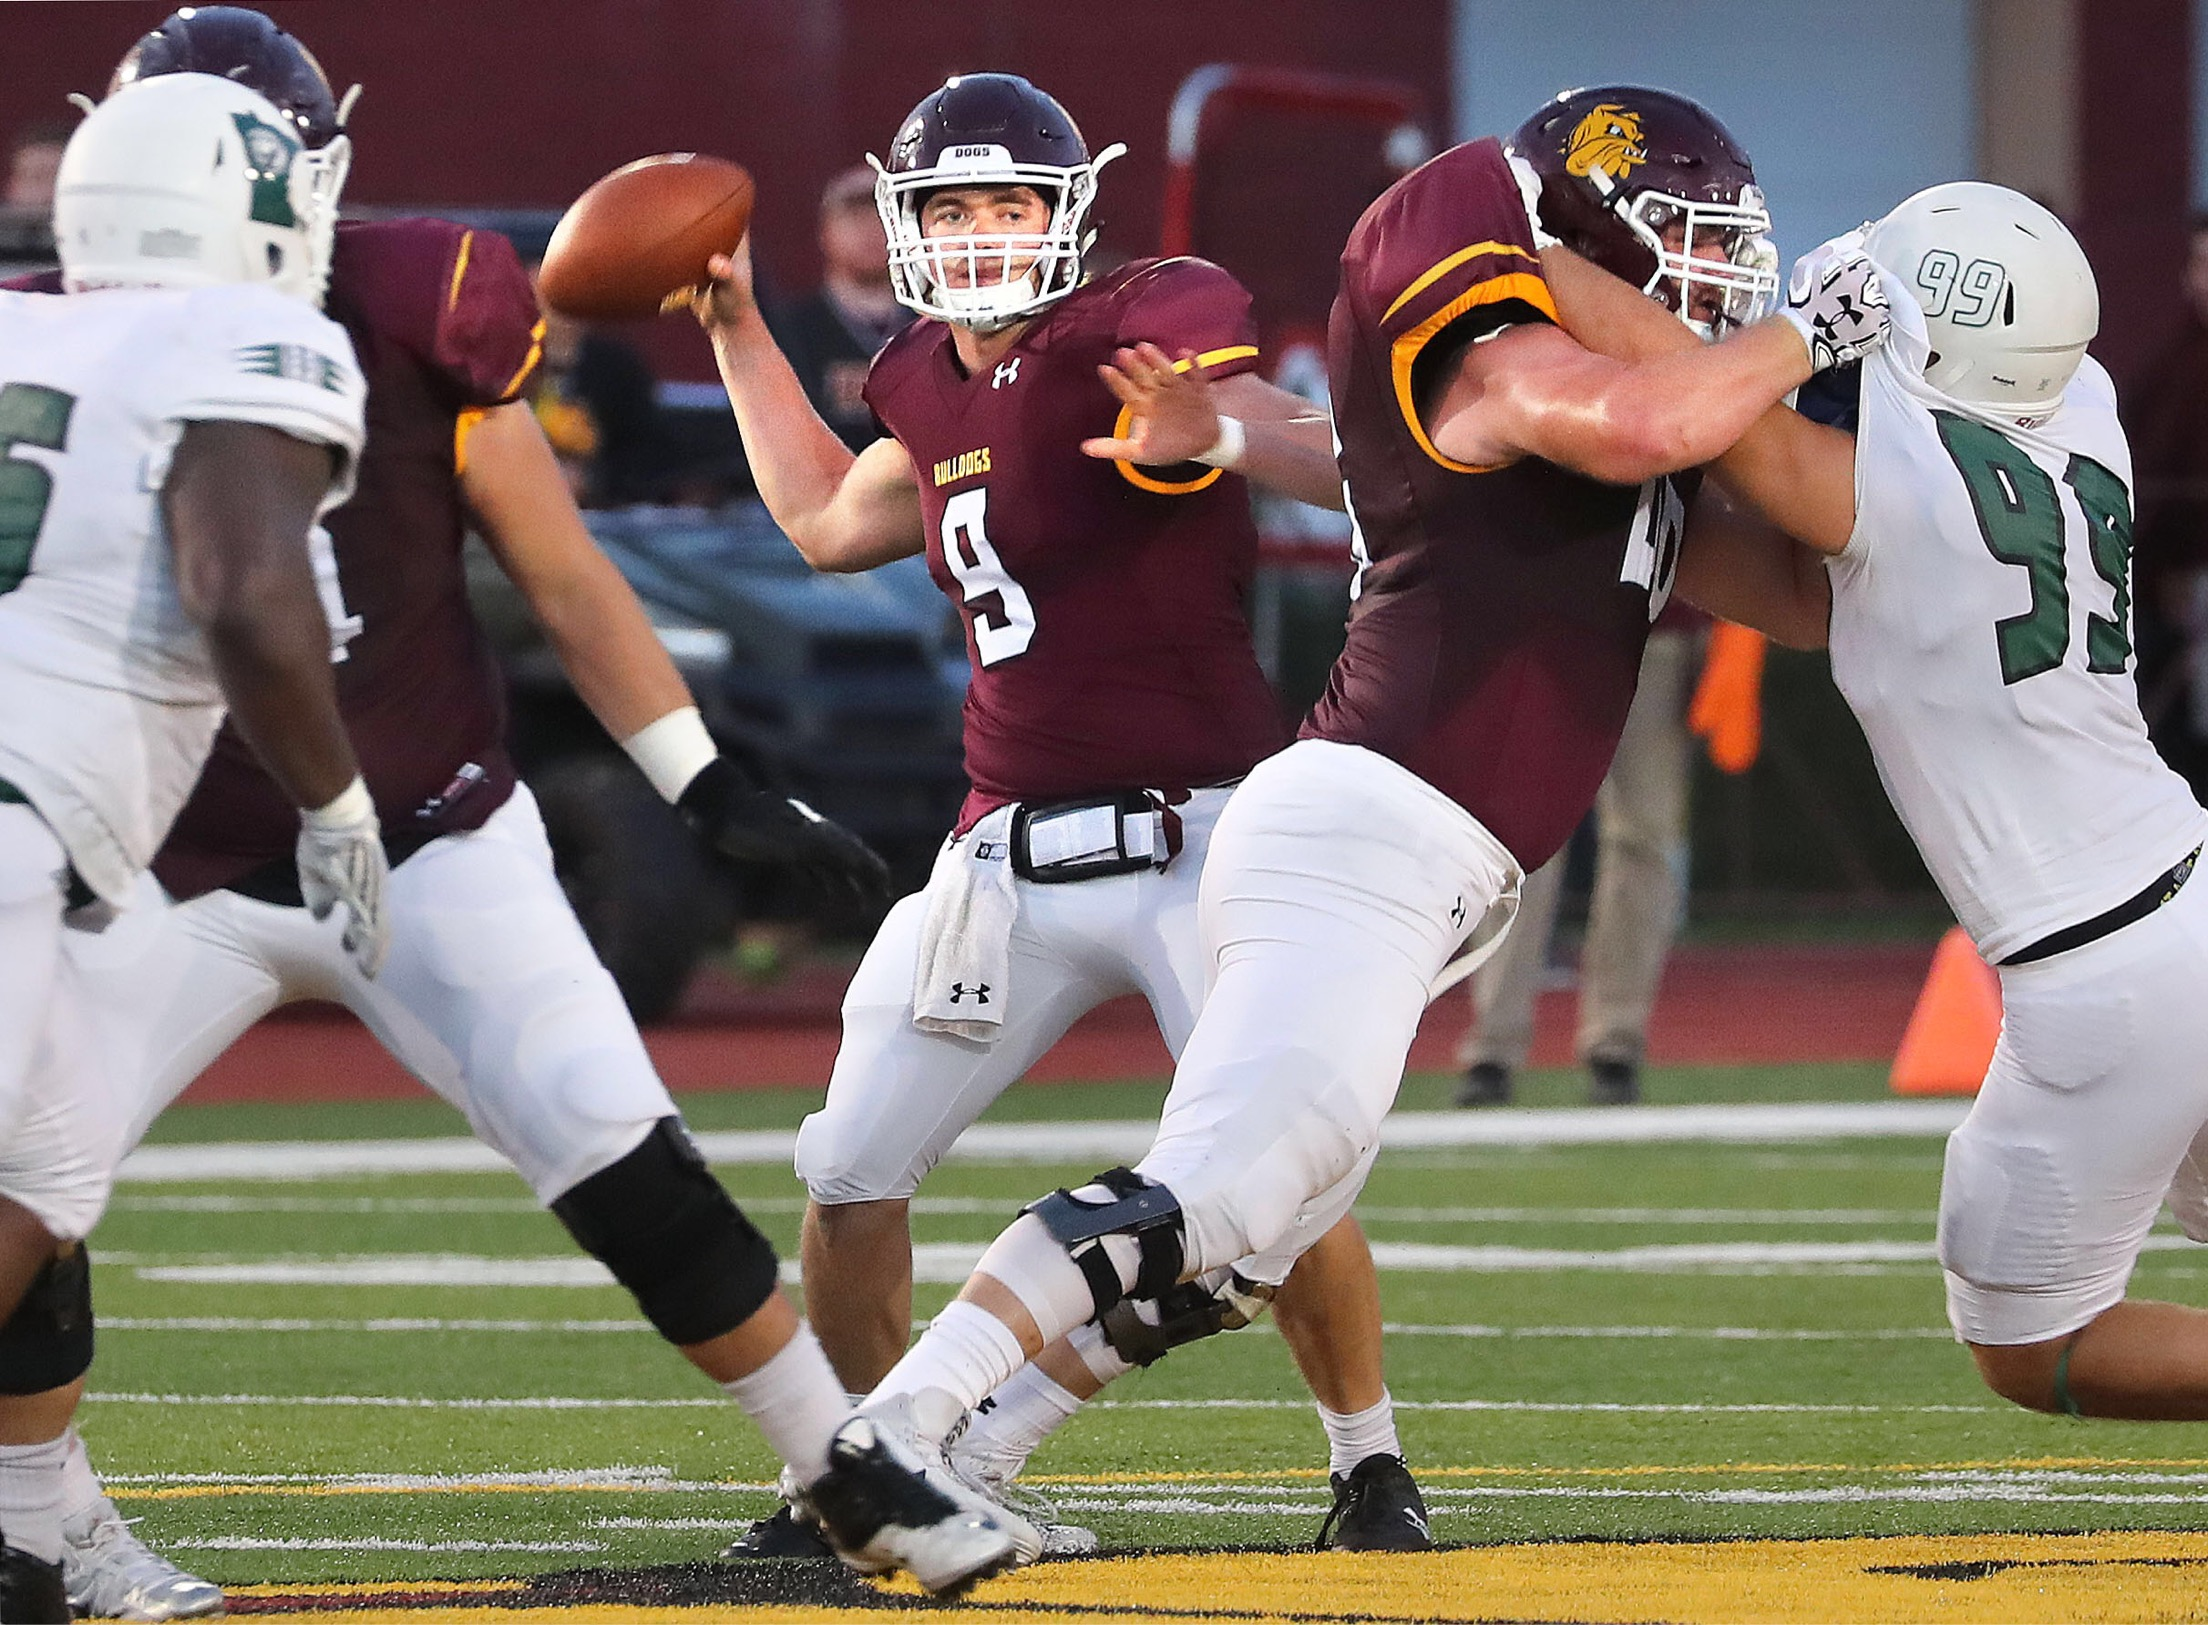 Sophomore QB, John Larson (No. 9) ended the game against Bemidji State with 19 completed passes and 242 yards thrown. Photo by: Bob King